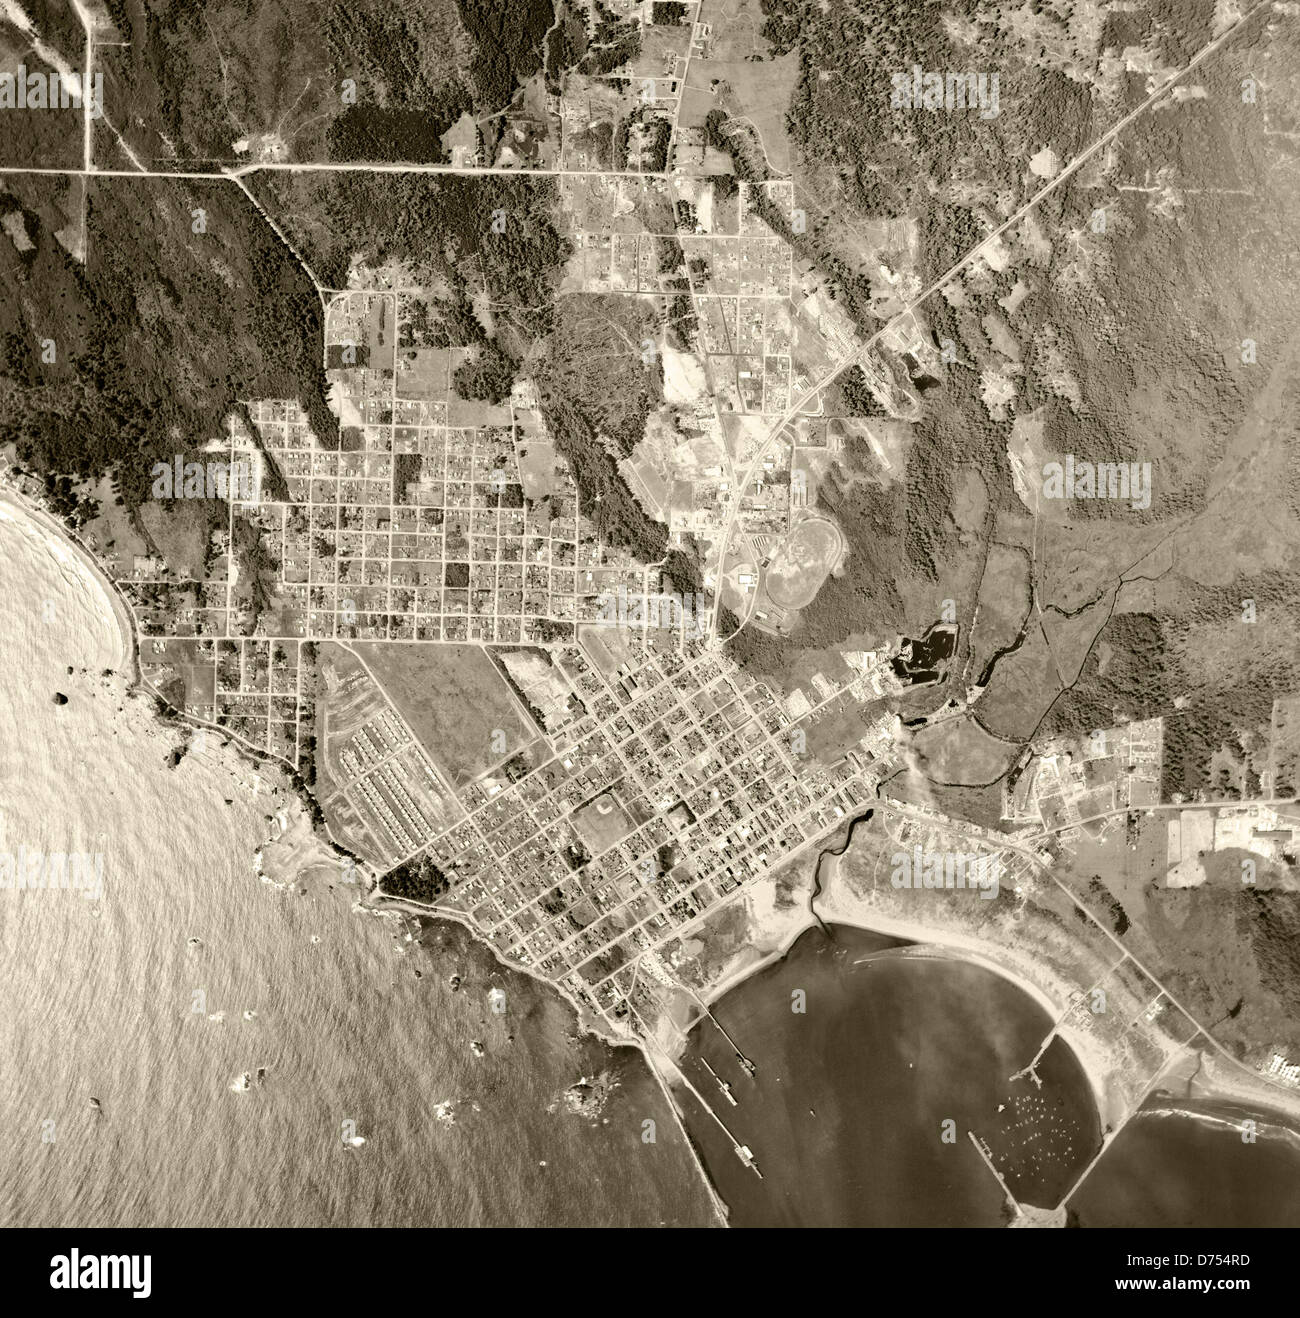 historical aerial photograph Crescent City, California, 1955 - Stock Image